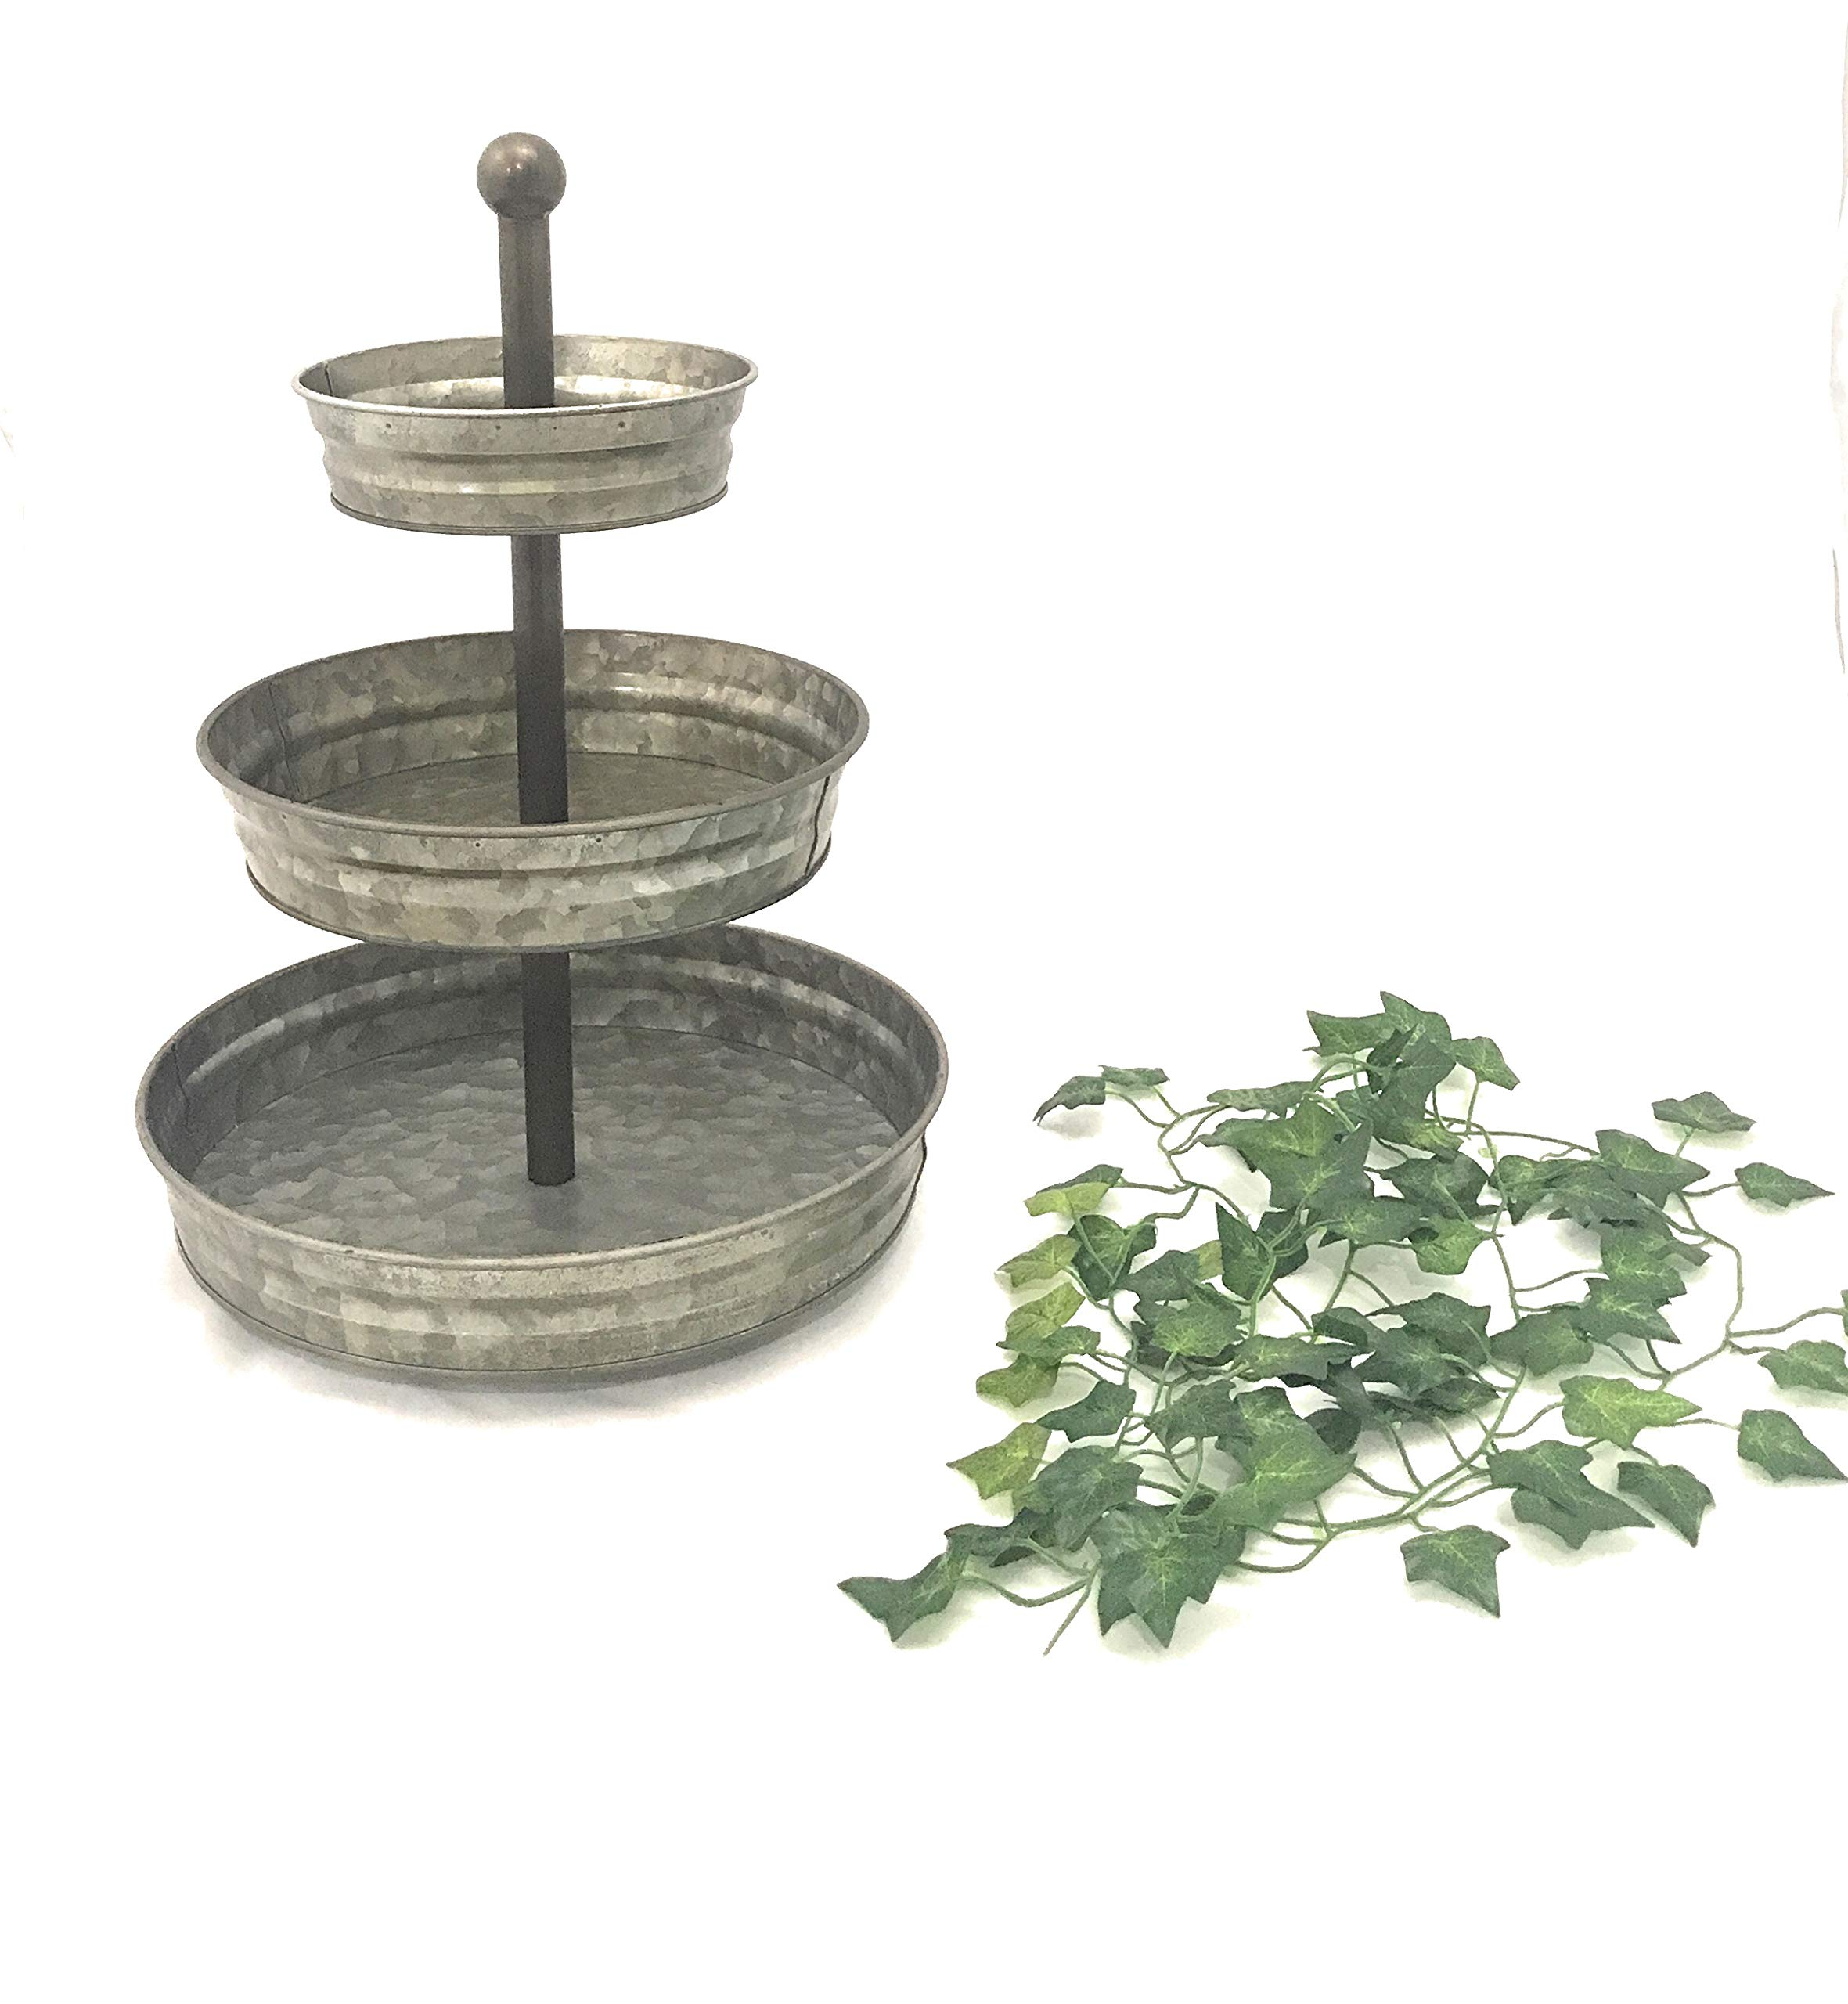 3 Tier serving tray galvanized farmhouse stand with 6' ft of Artificial Ivy